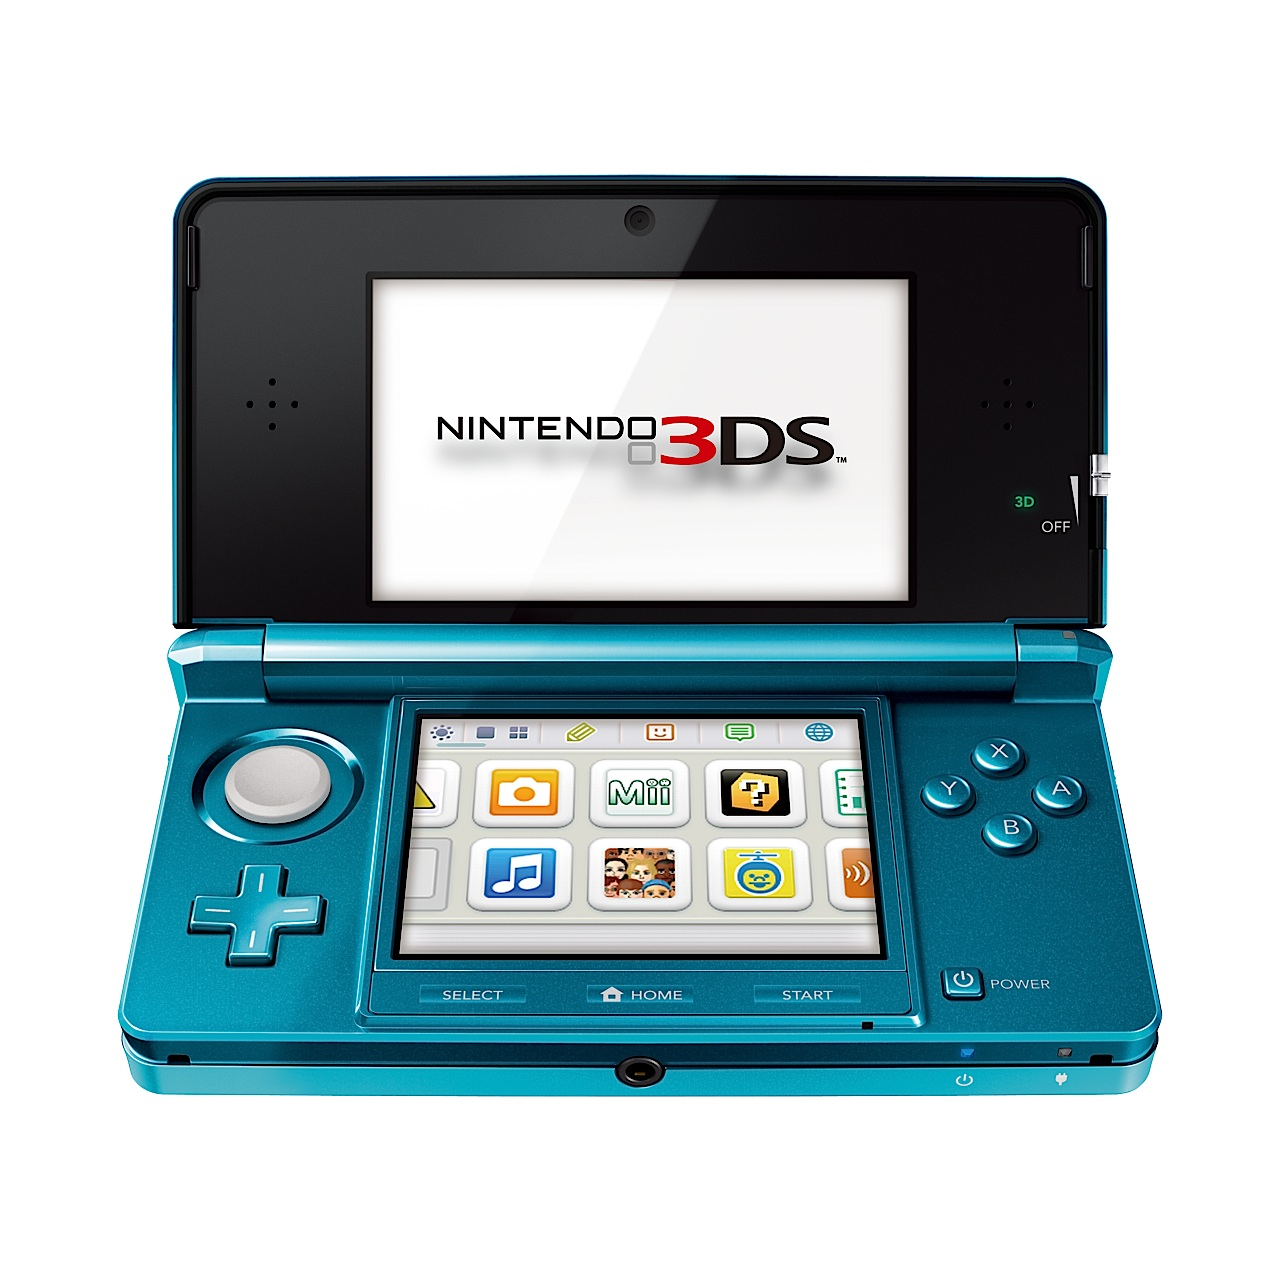 Nintendo 3DS | 19 Million Units Sold | Horrible Night